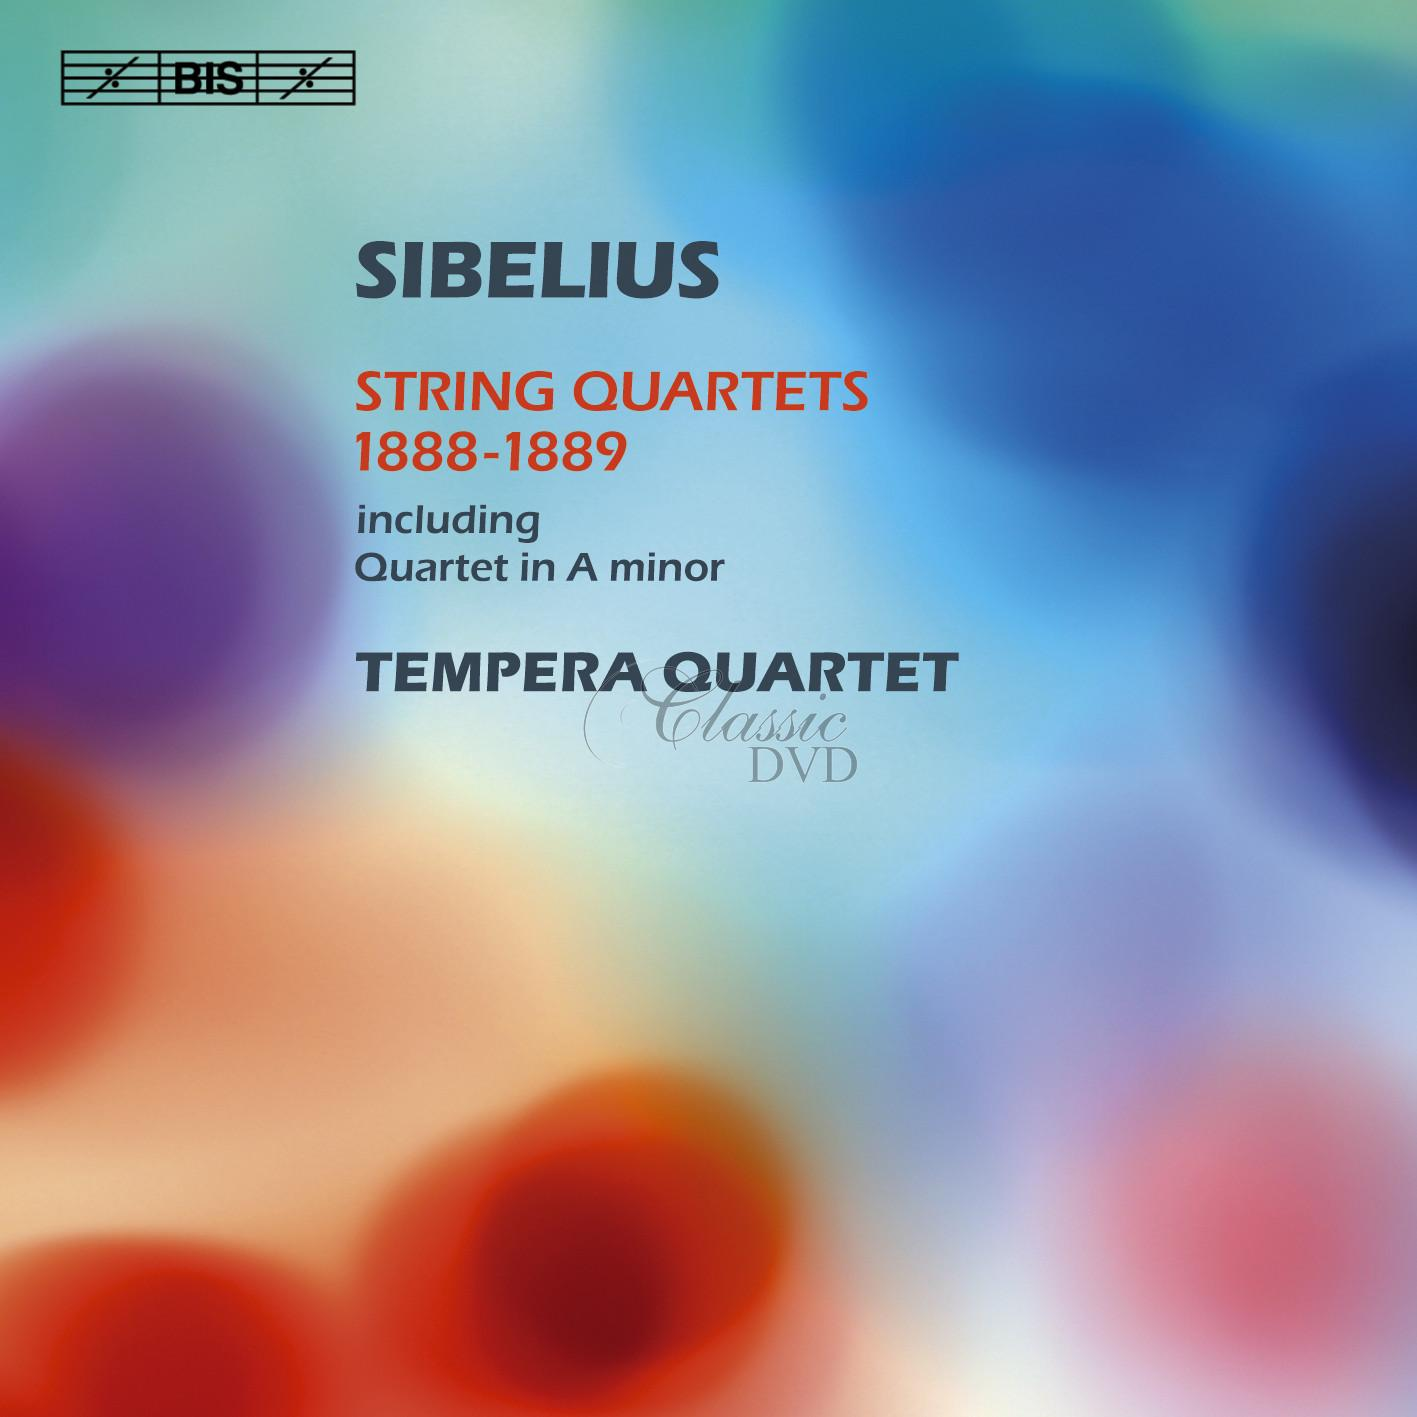 Sibelius - String Quartets 1888-1889 (CD)